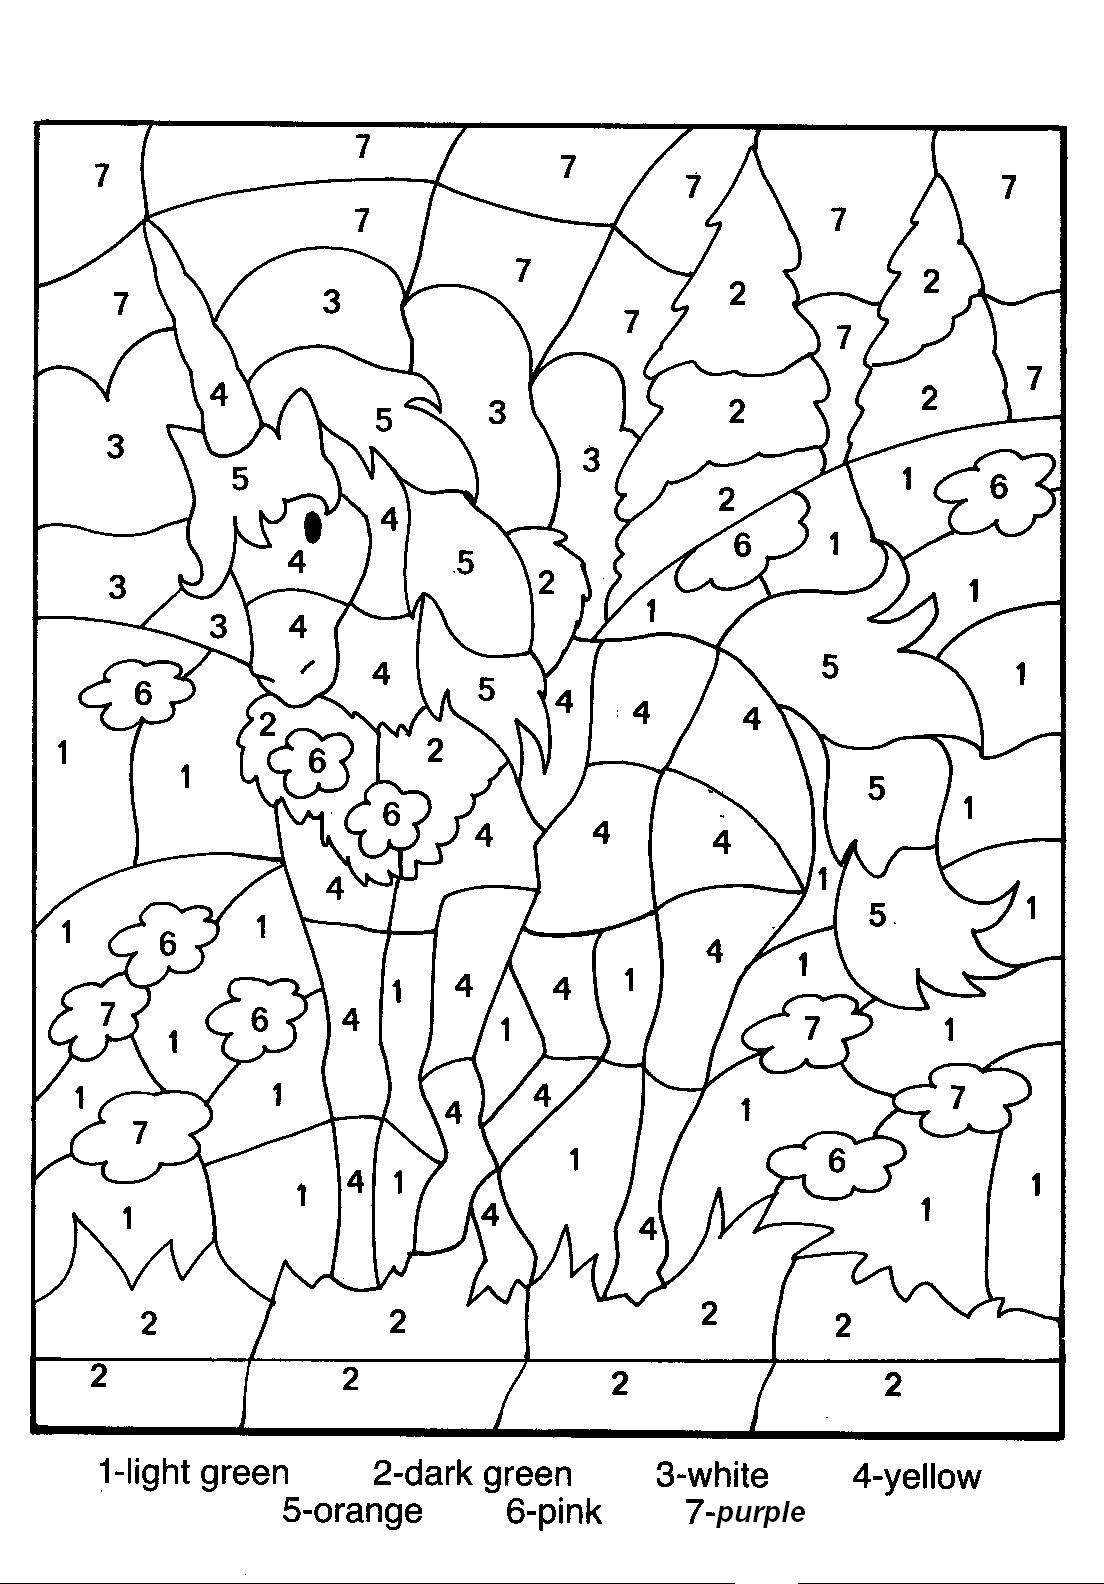 coloring by number for kids color by number coloring pages to download and print for free for kids by number coloring